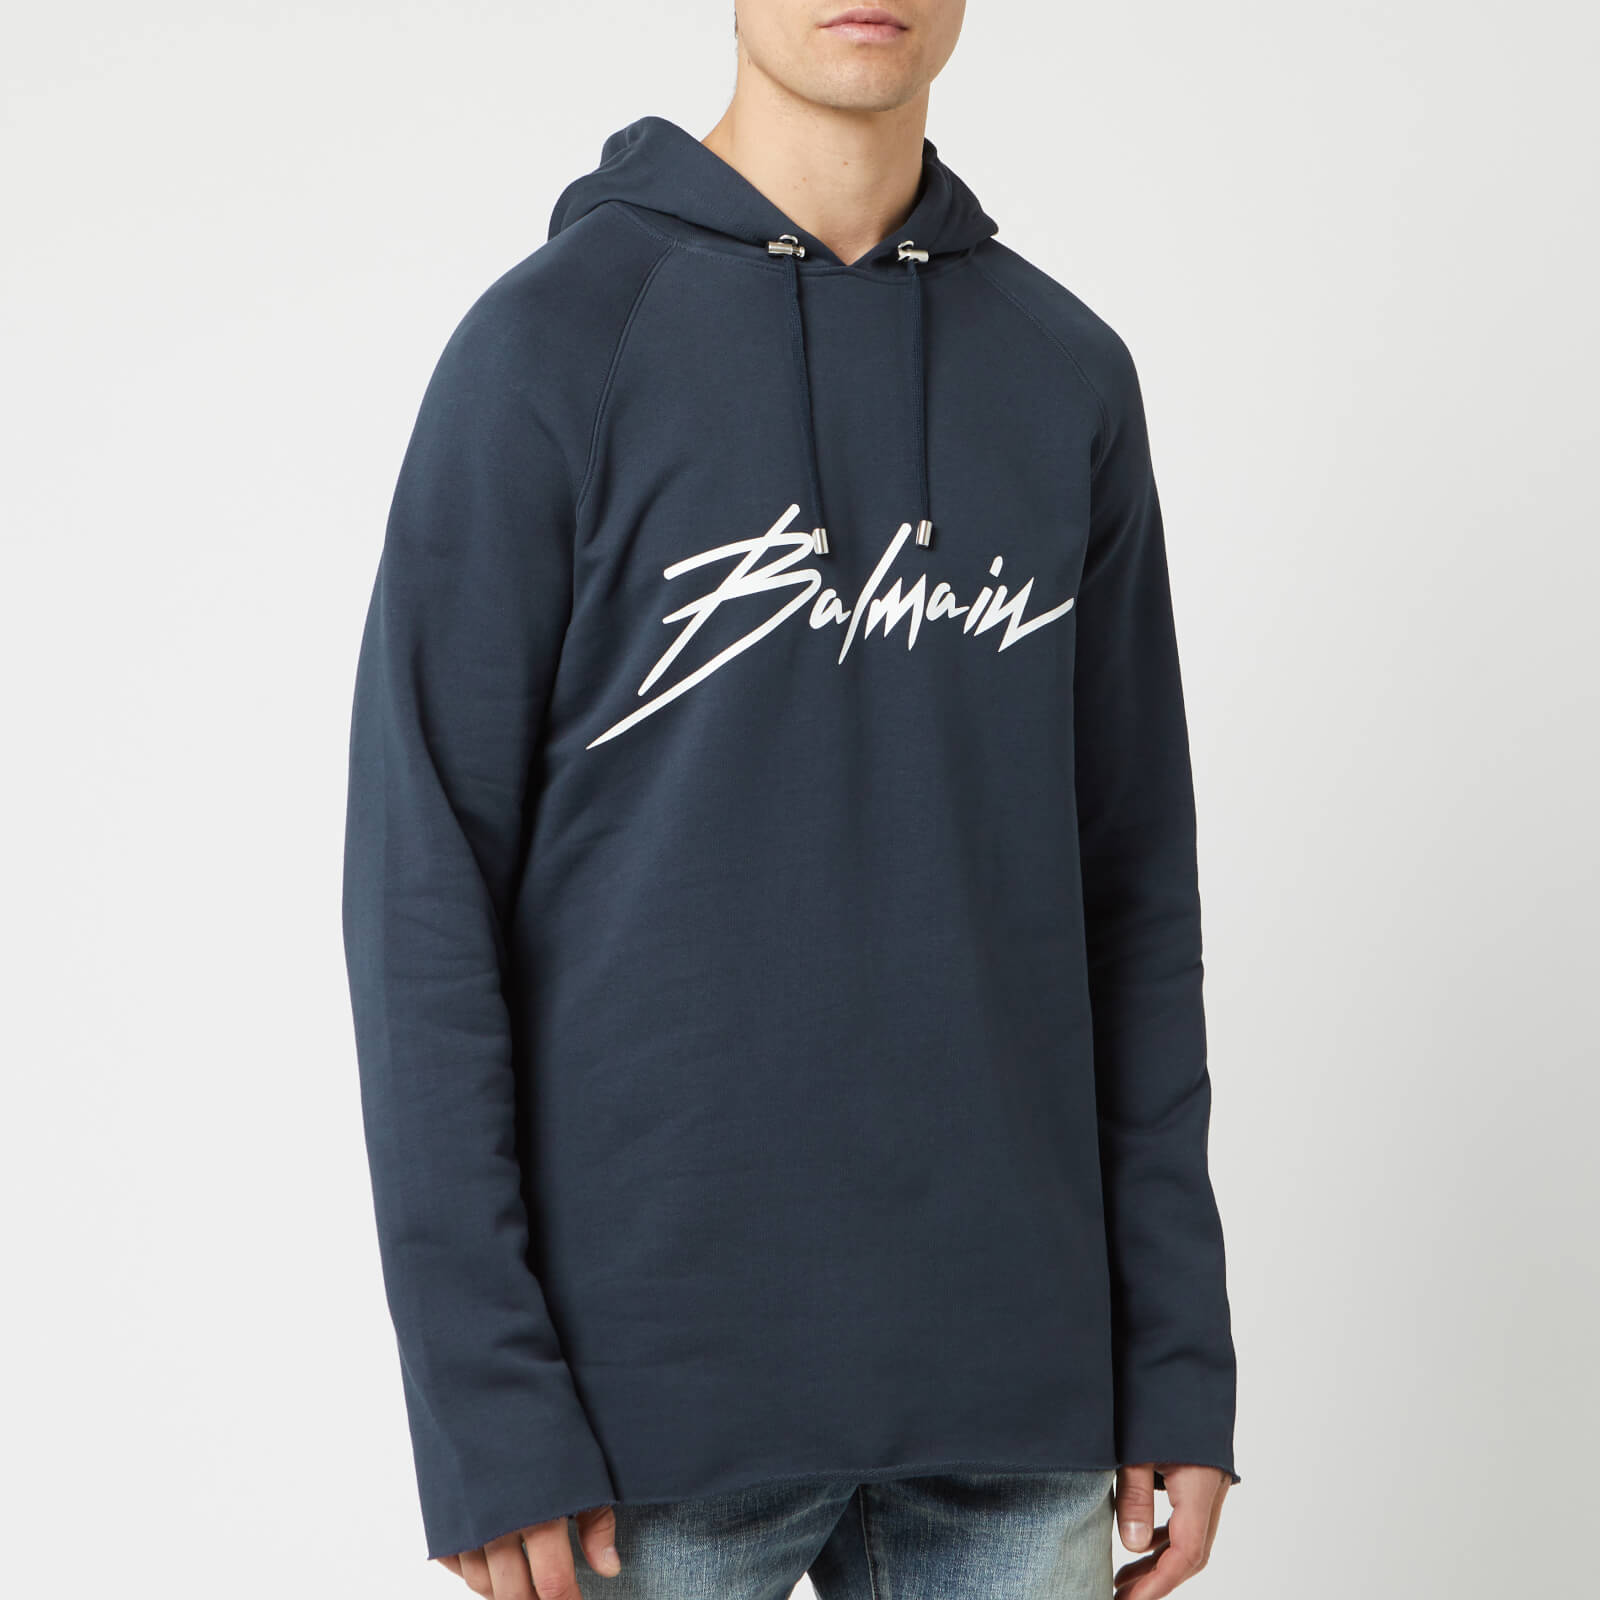 dd135a4e1 Balmain Men's Signature Hoodie - Marine - Free UK Delivery over £50